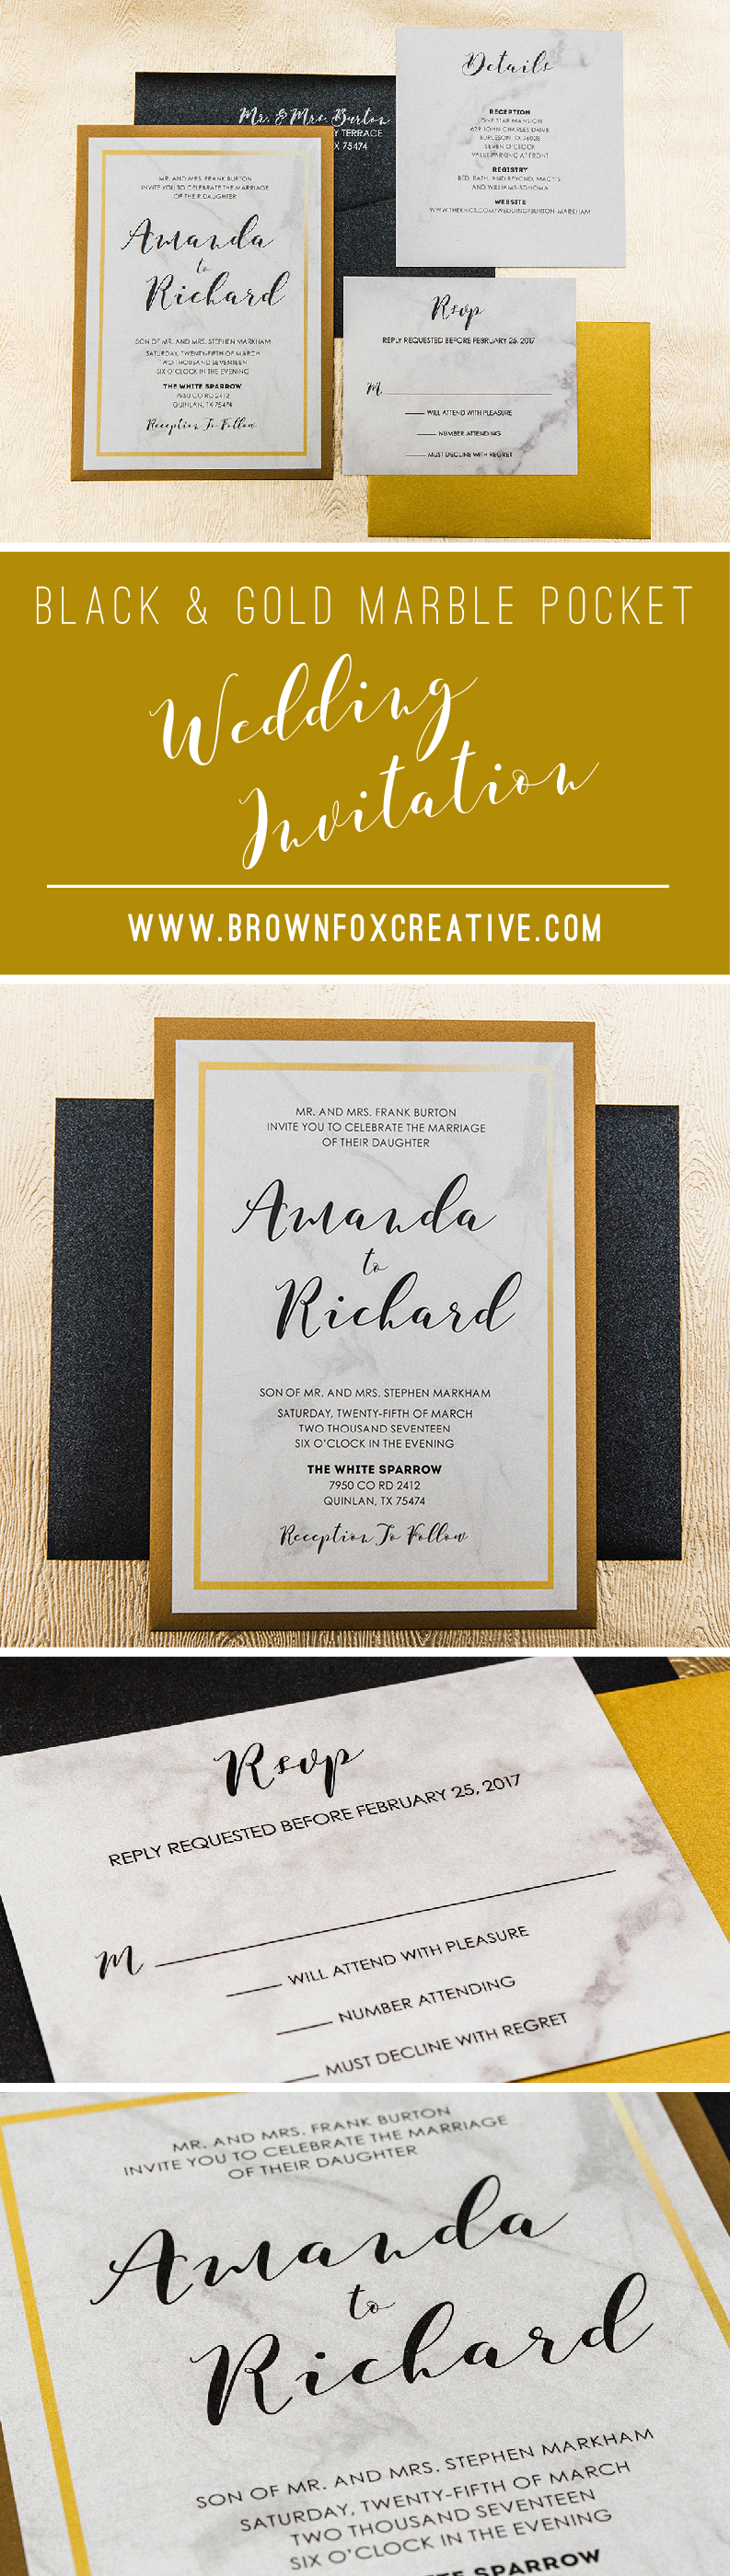 5x7 formal back pocket marble wedding invitation in black and gold 5x7 formal back pocket marble wedding invitation in black and gold includes 2 inserts and stopboris Gallery